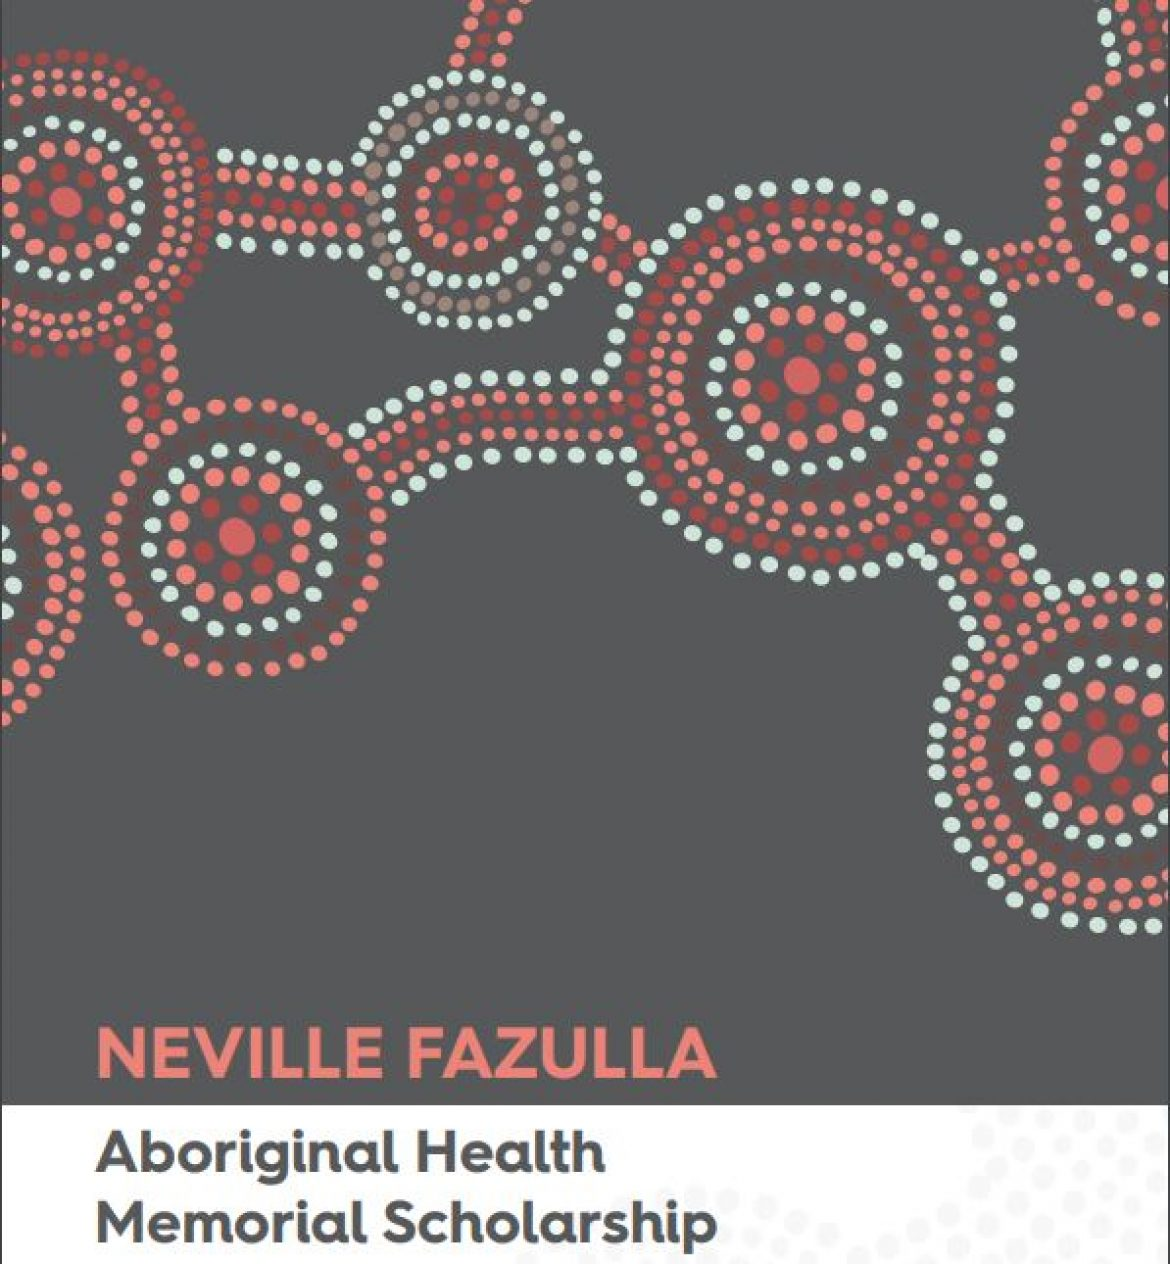 Neville Fazulla Aboriginal Health Memorial Scholarship